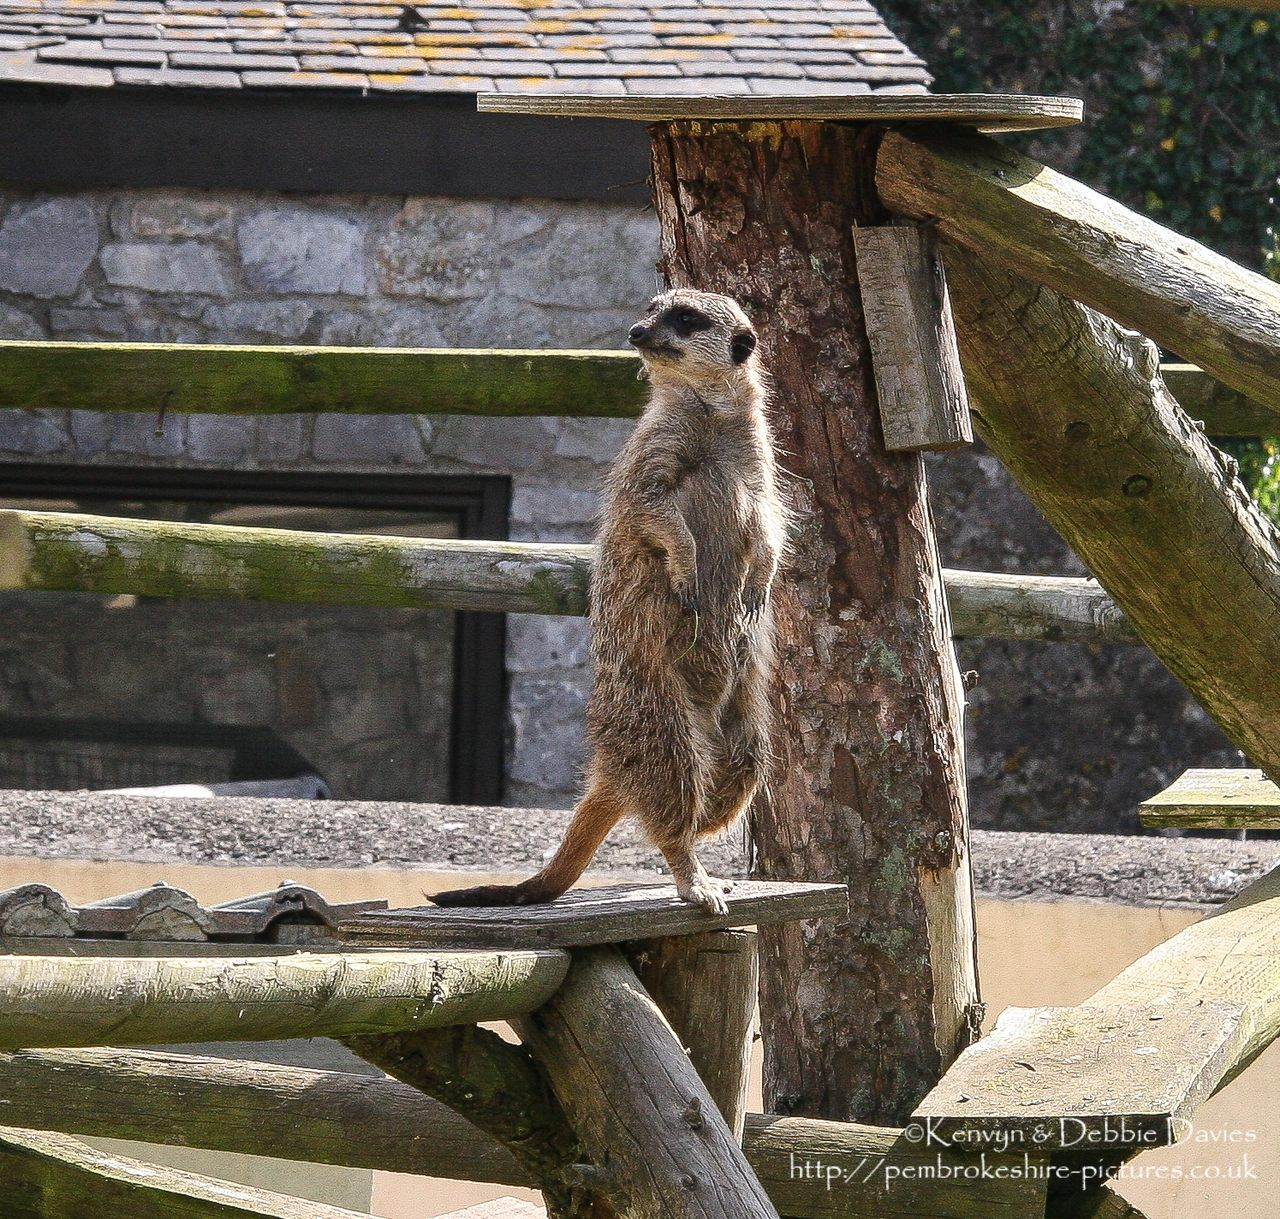 A rather tubby meerkat at Manor House Leisure Park